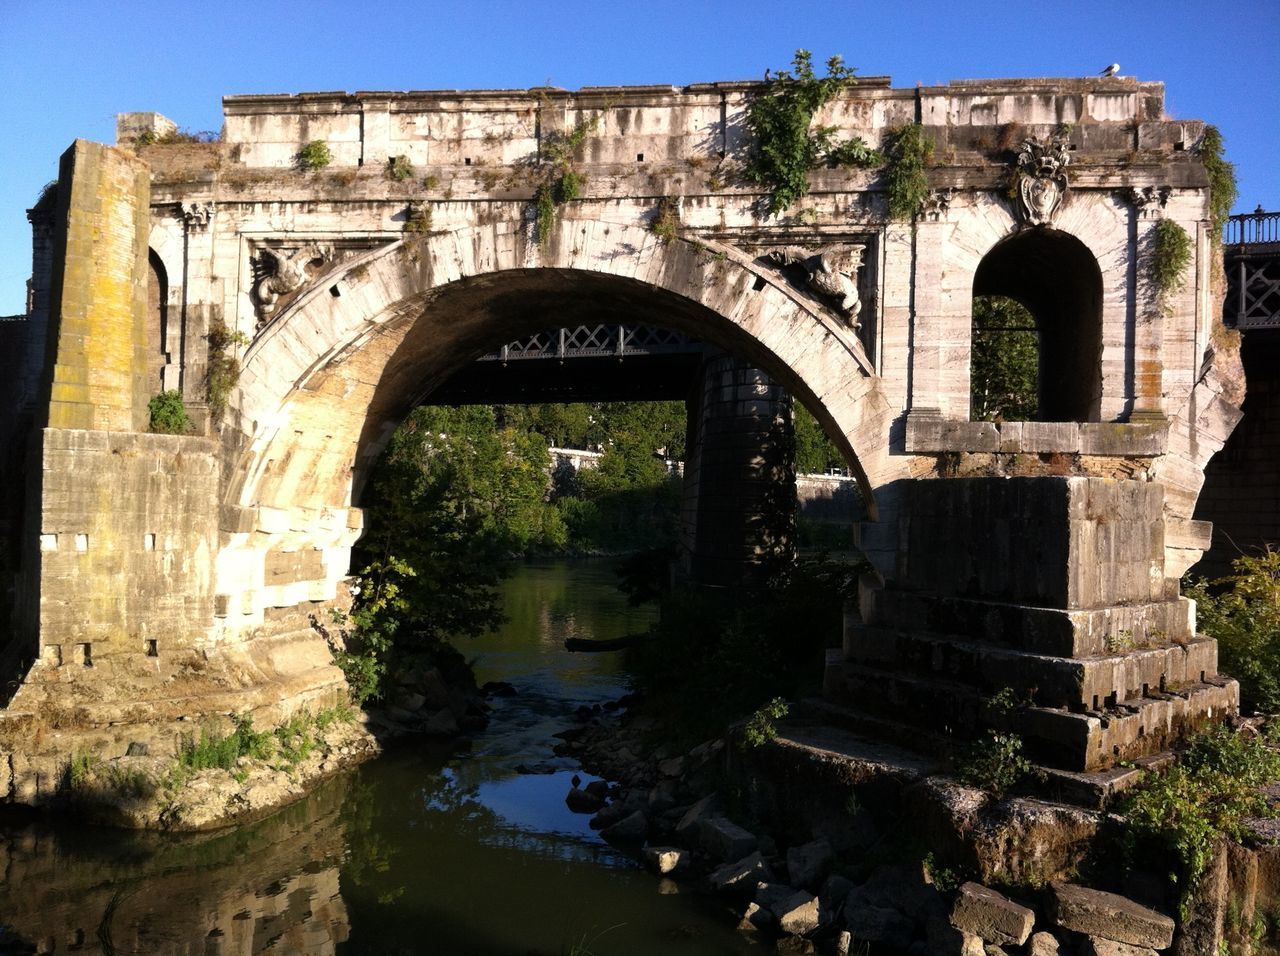 Ancient Ancient Civilization Arched Architecture Bridge Built Structure Culture Day Famous Place Historic History Italy Old Ruin Outdoors Ponte Rotto Rome Ruined Tevere River The Past Tourism Travel Destinations Tree